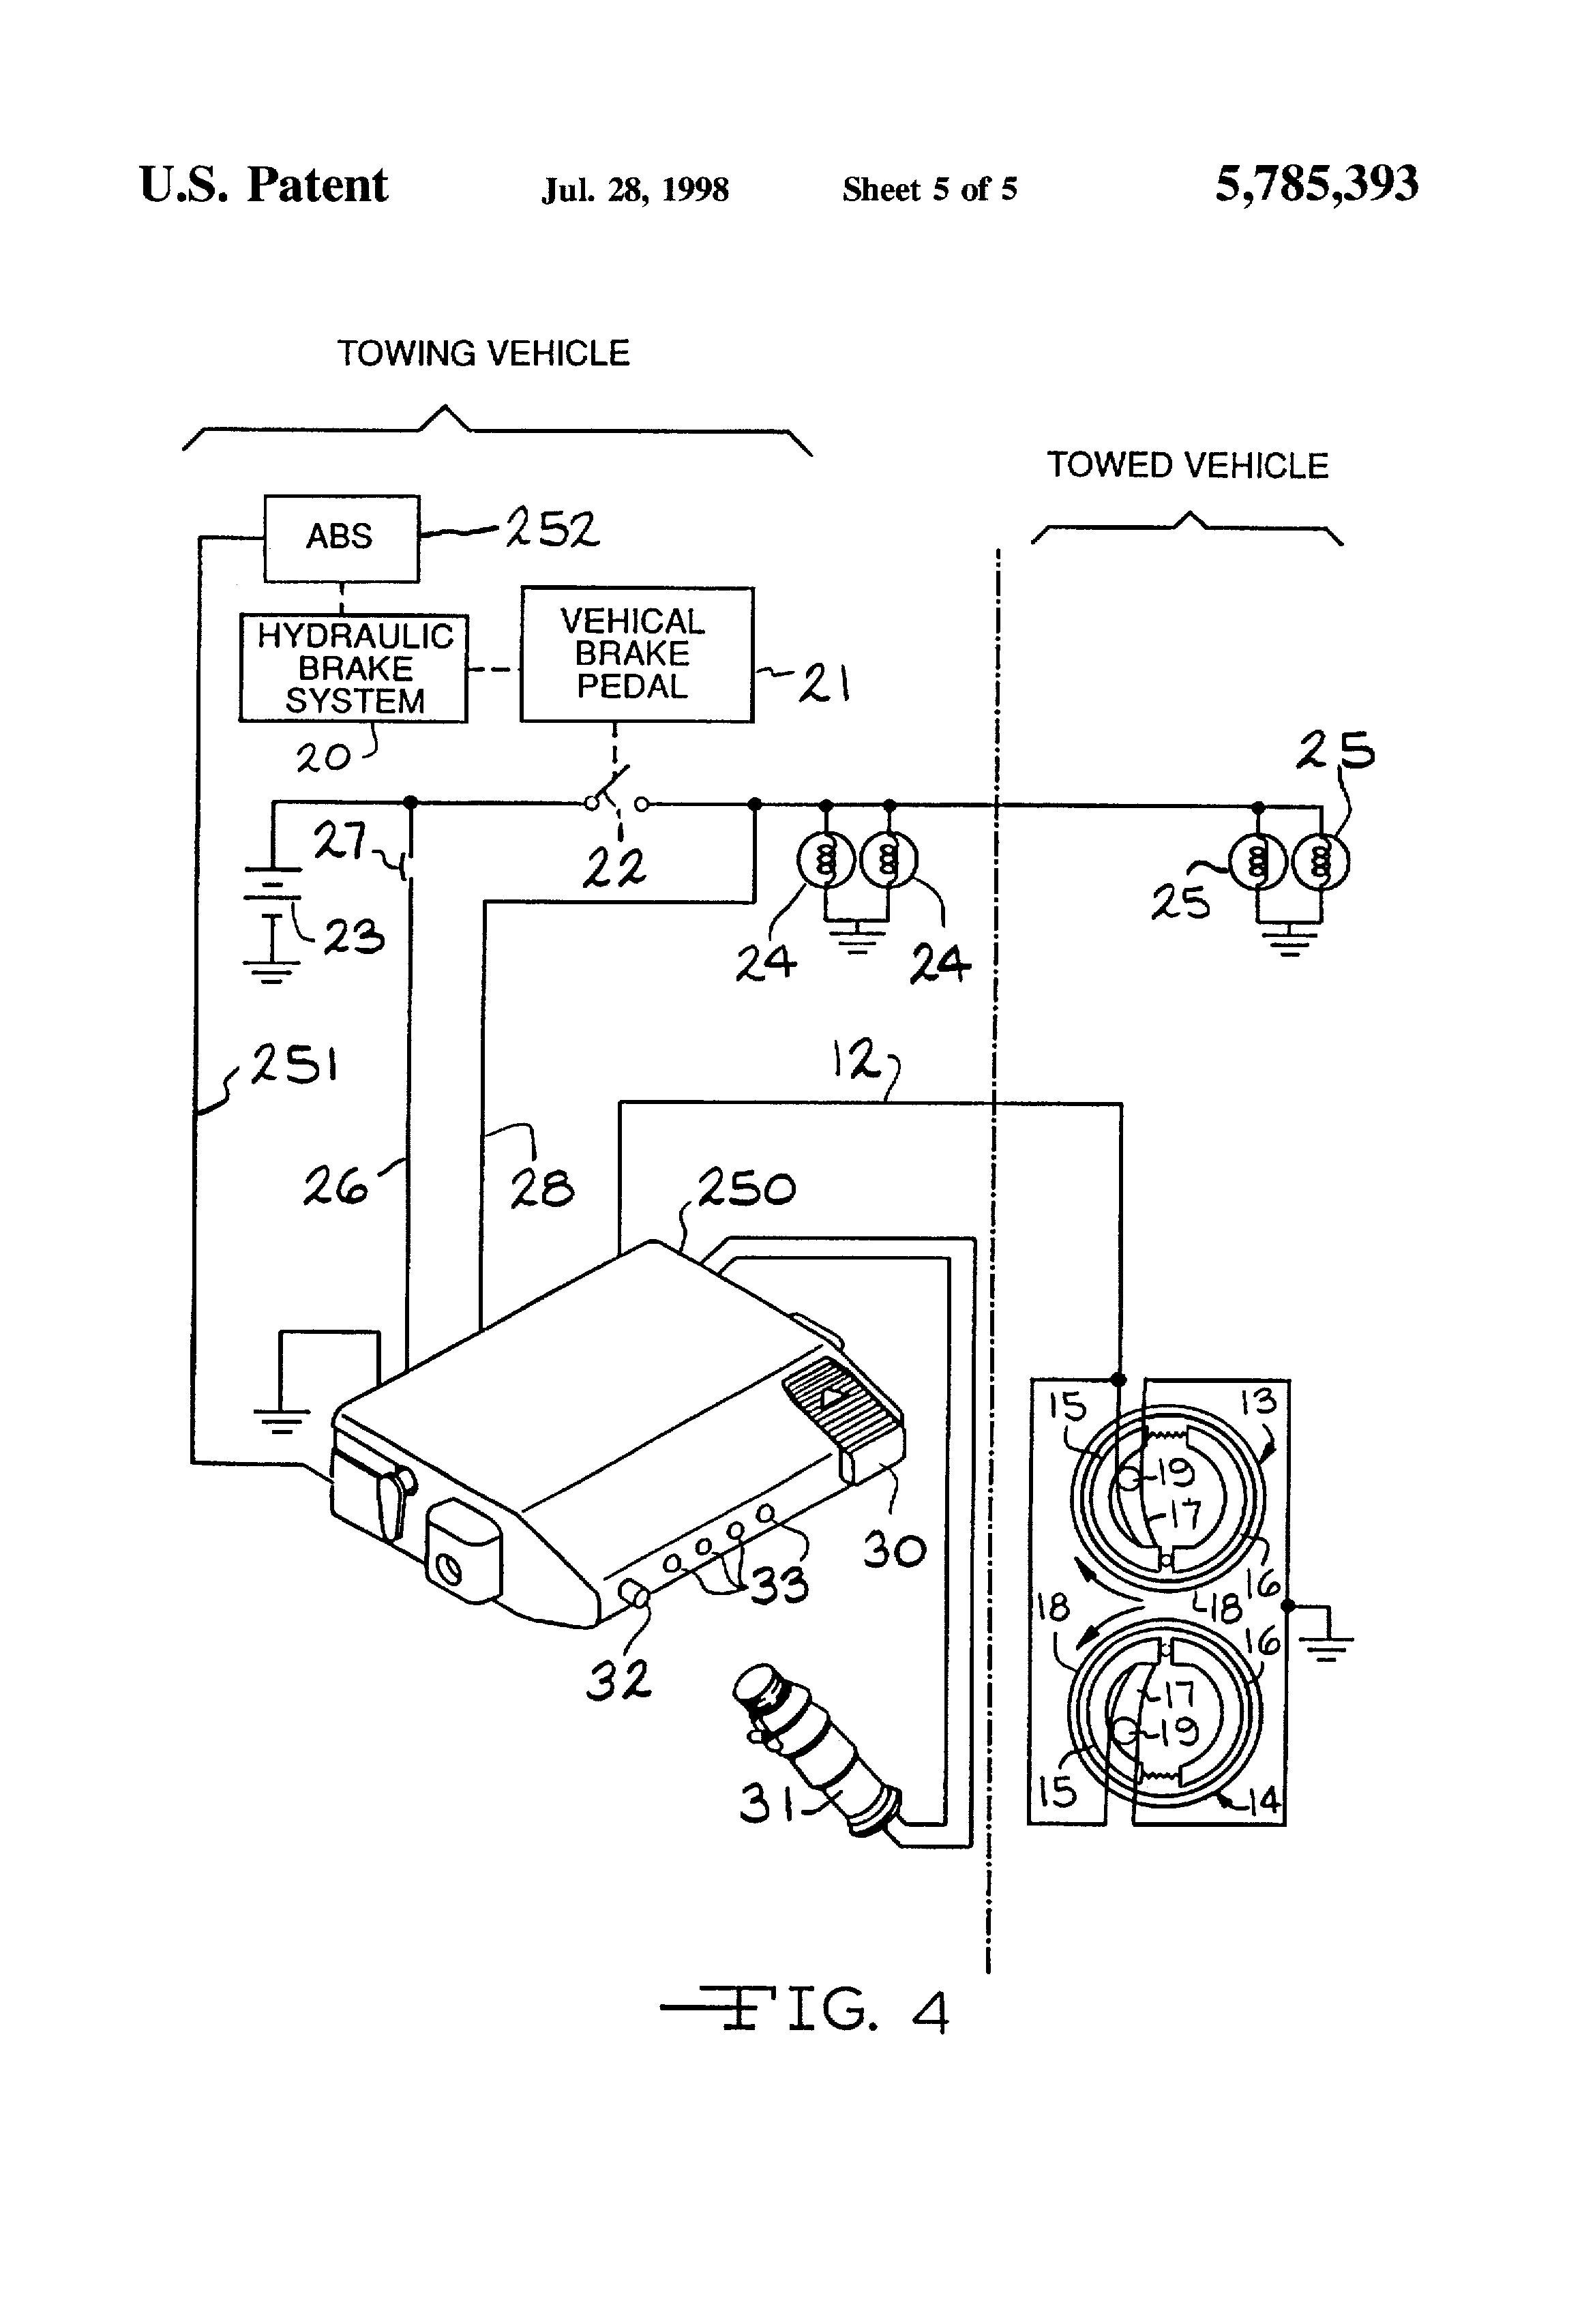 2003 Dodge Ram Trailer Controller Wiring Diagram | Wiring Library - 2003 Dodge Ram Trailer Brake Wiring Diagram